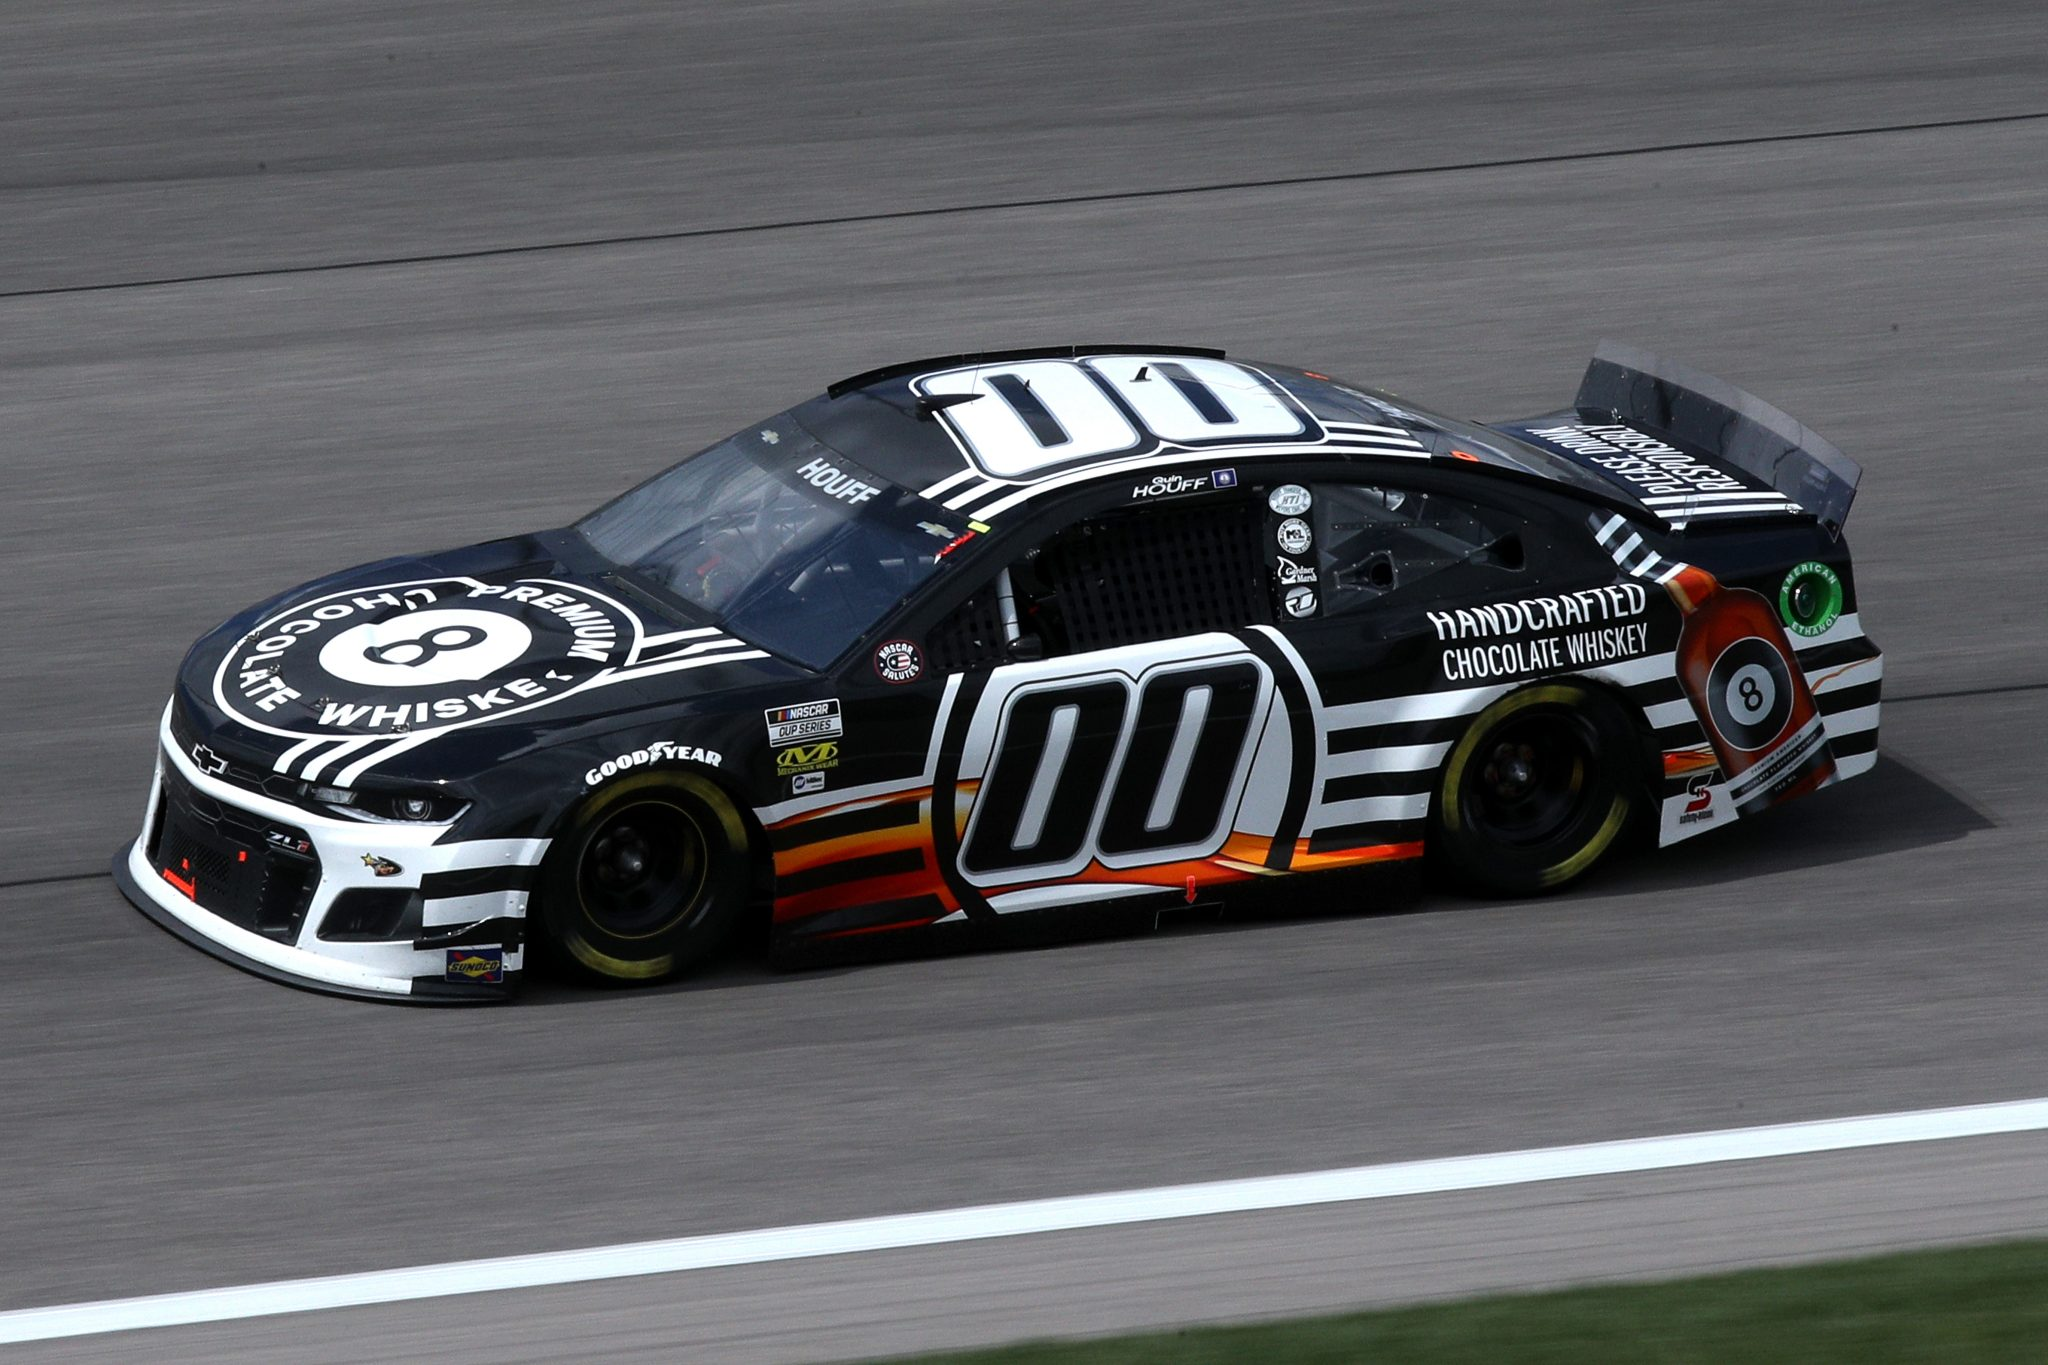 KANSAS CITY, KANSAS - MAY 02: Quin Houff, driver of the #00 8 Ball Chocolate Whiskey Chevrolet, drives during the NASCAR Cup Series Buschy McBusch Race 400 at Kansas Speedway on May 02, 2021 in Kansas City, Kansas. (Photo by Sean Gardner/Getty Images) | Getty Images